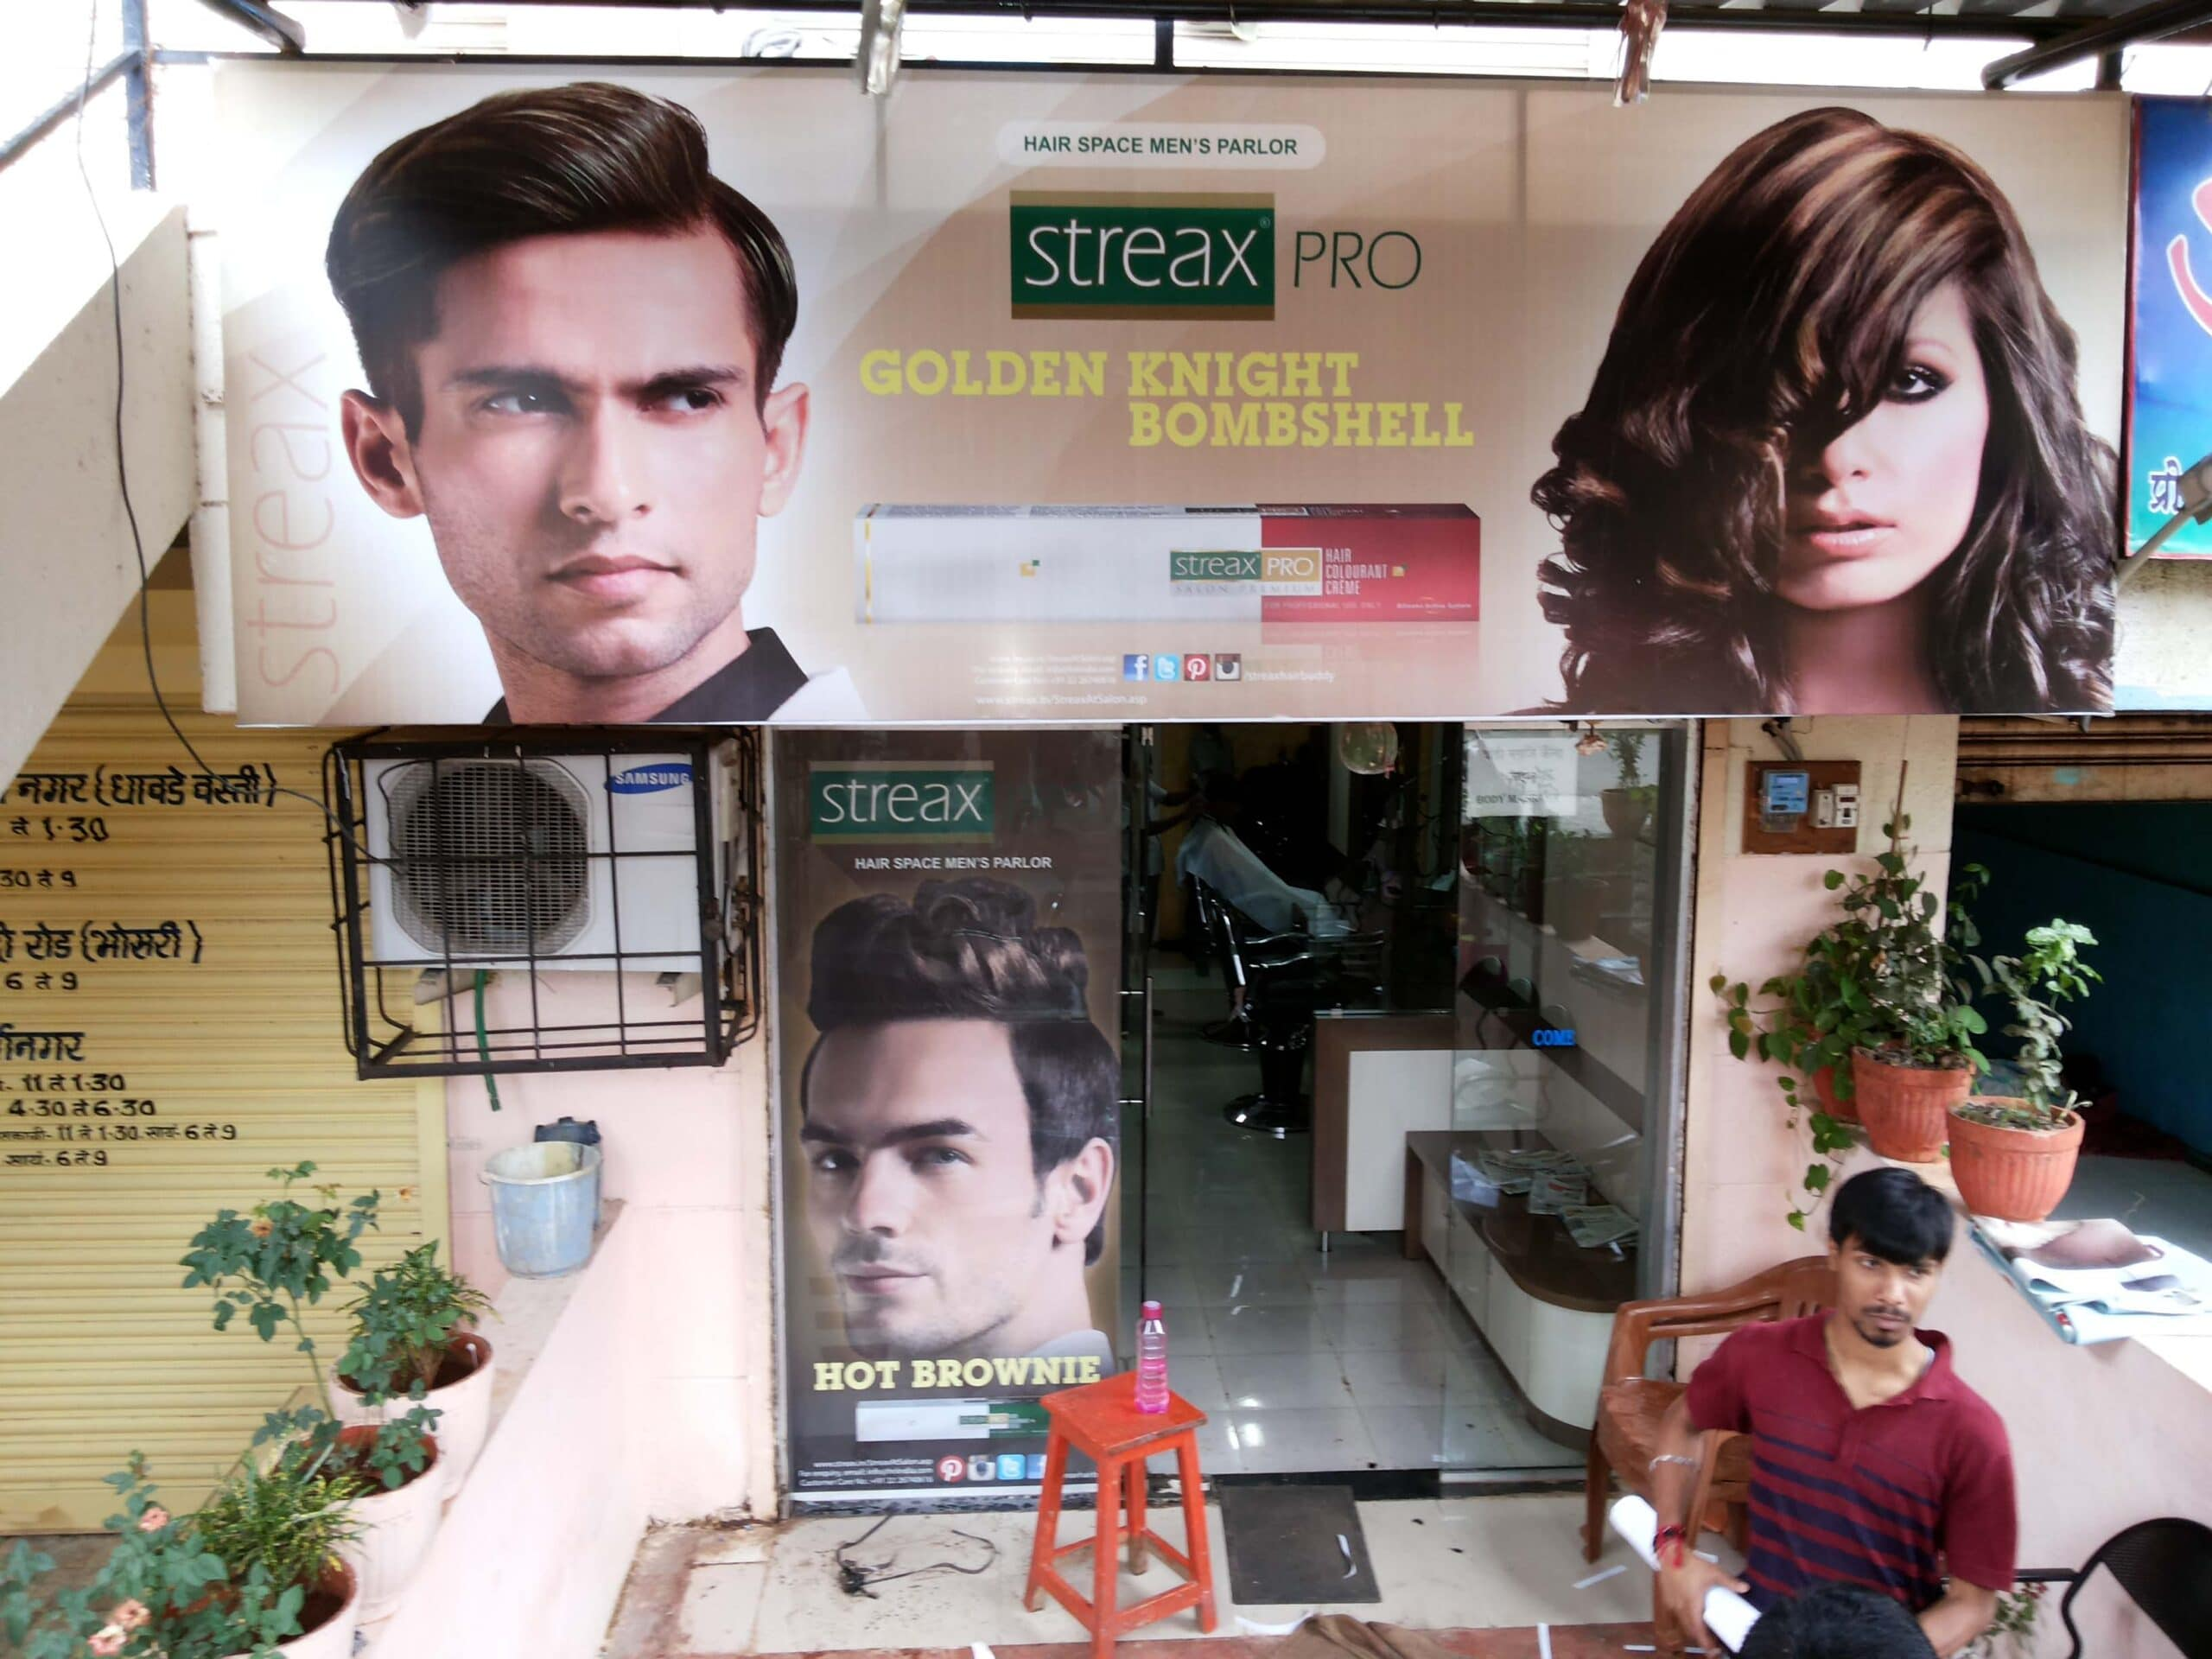 Front lit shop board and glass film prints used for product advertising at the Streax beauty saloon